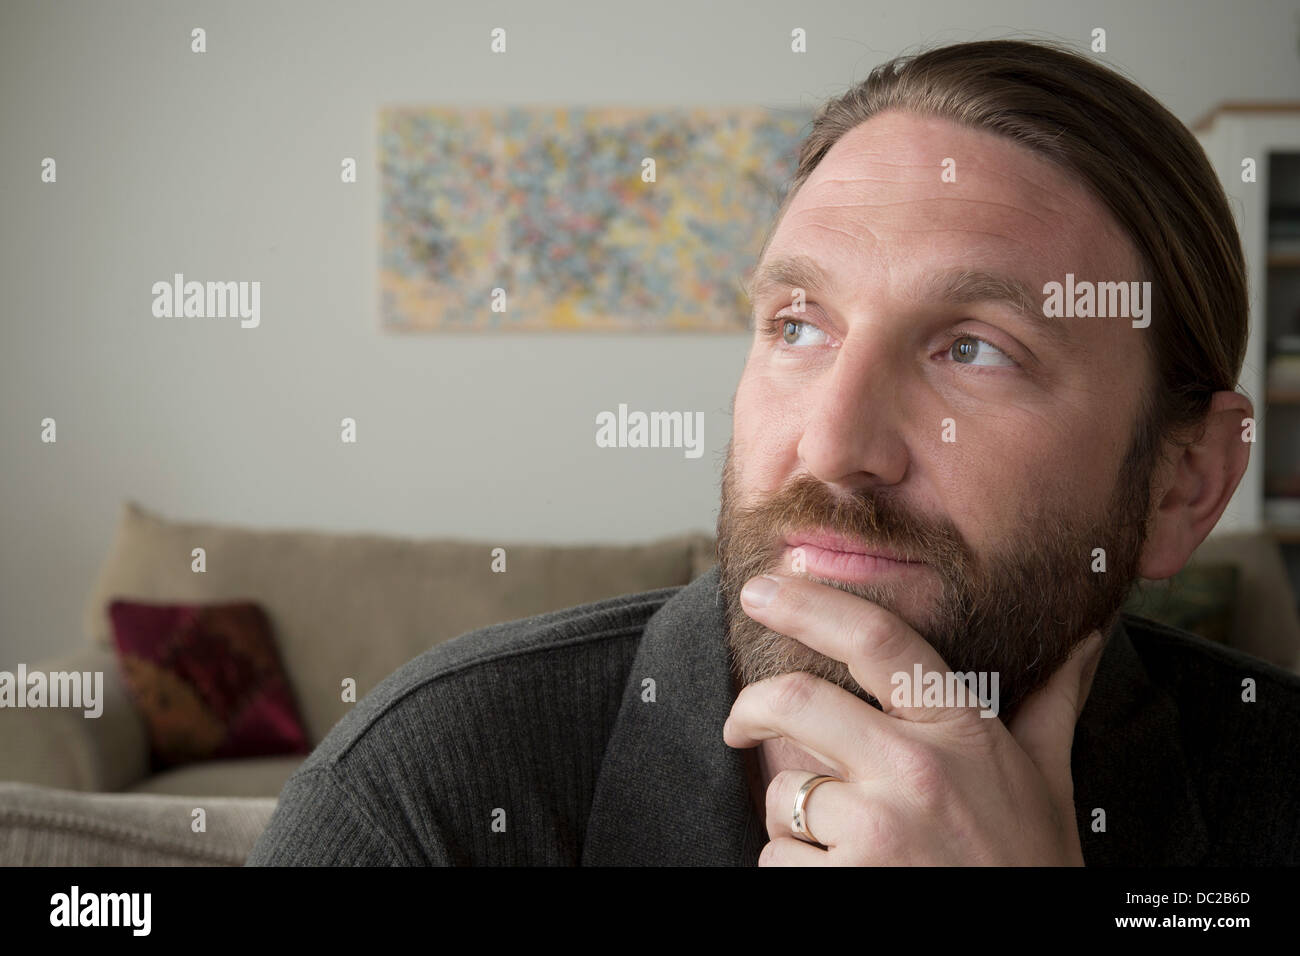 Man day dreaming - Stock Image